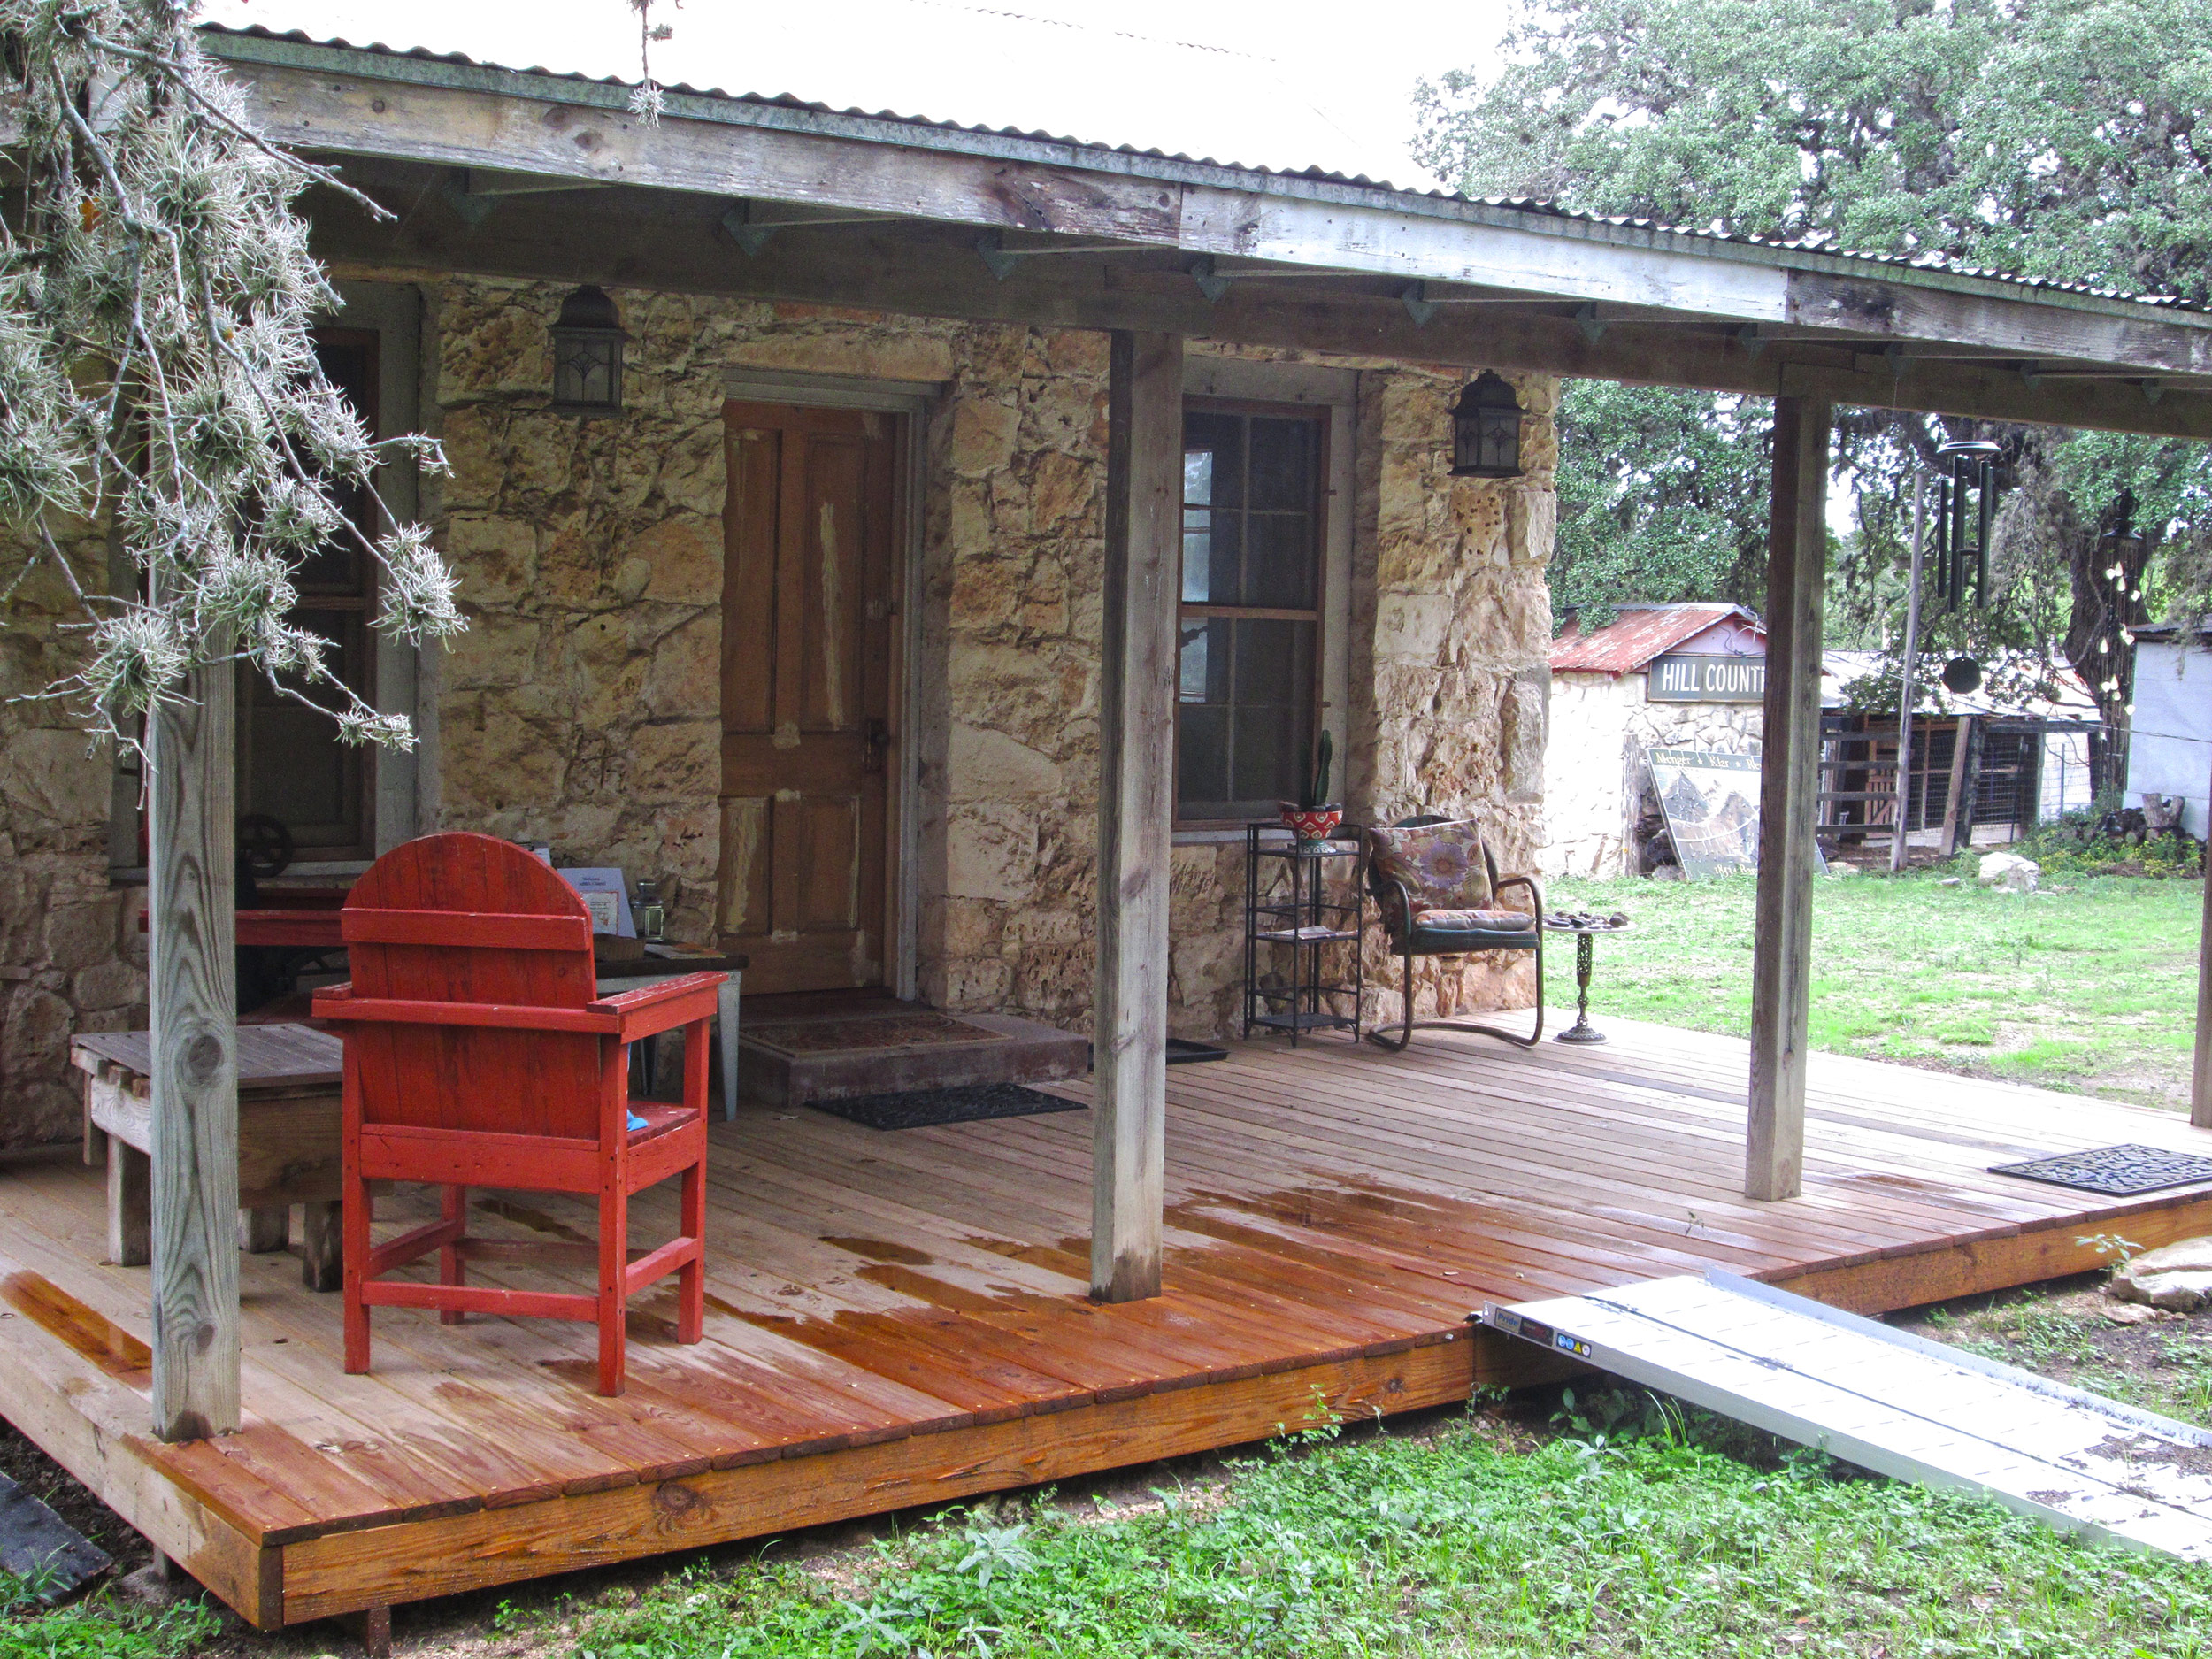 cabins buildings portable tx san own mega antonio in metal texas for barn to rent cottages storage sheds